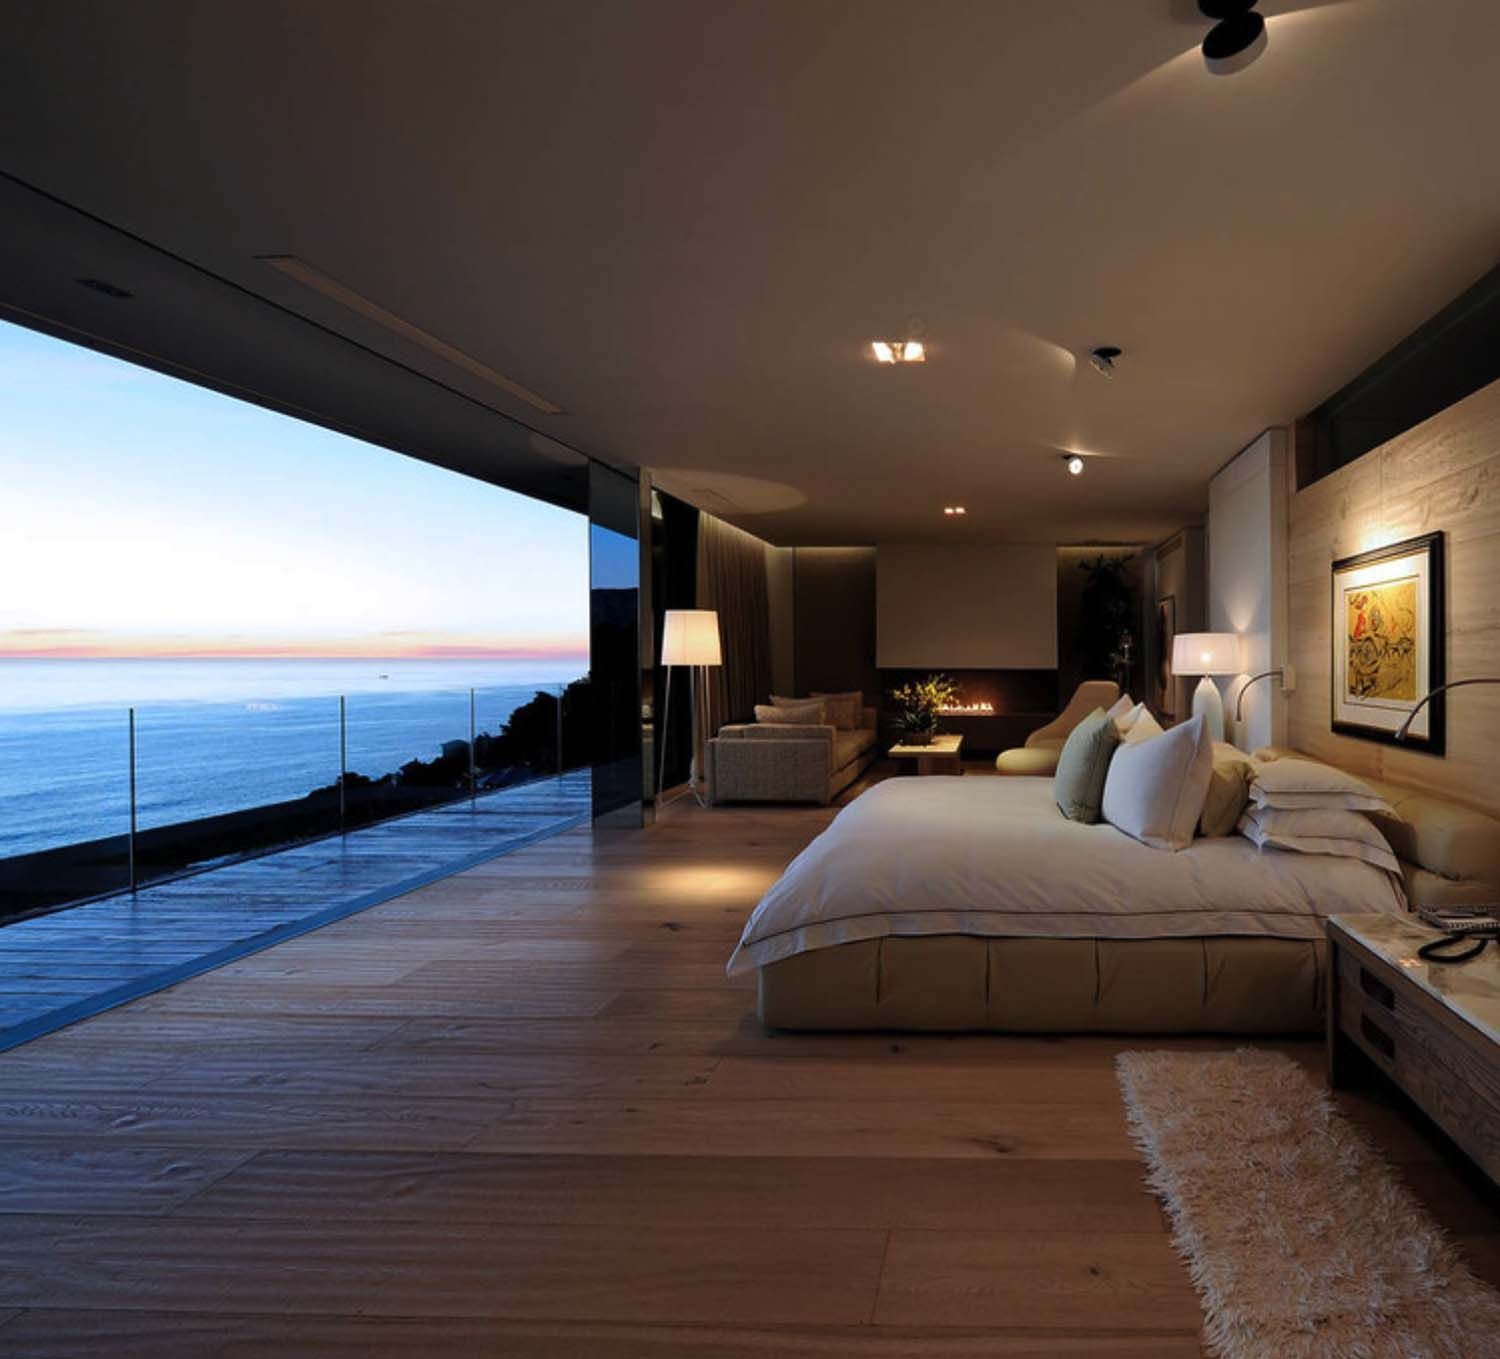 20 Gorgeous Luxury Bedroom Ideas: 33 Sun-drenched Bedrooms With Mesmerizing Ocean Views